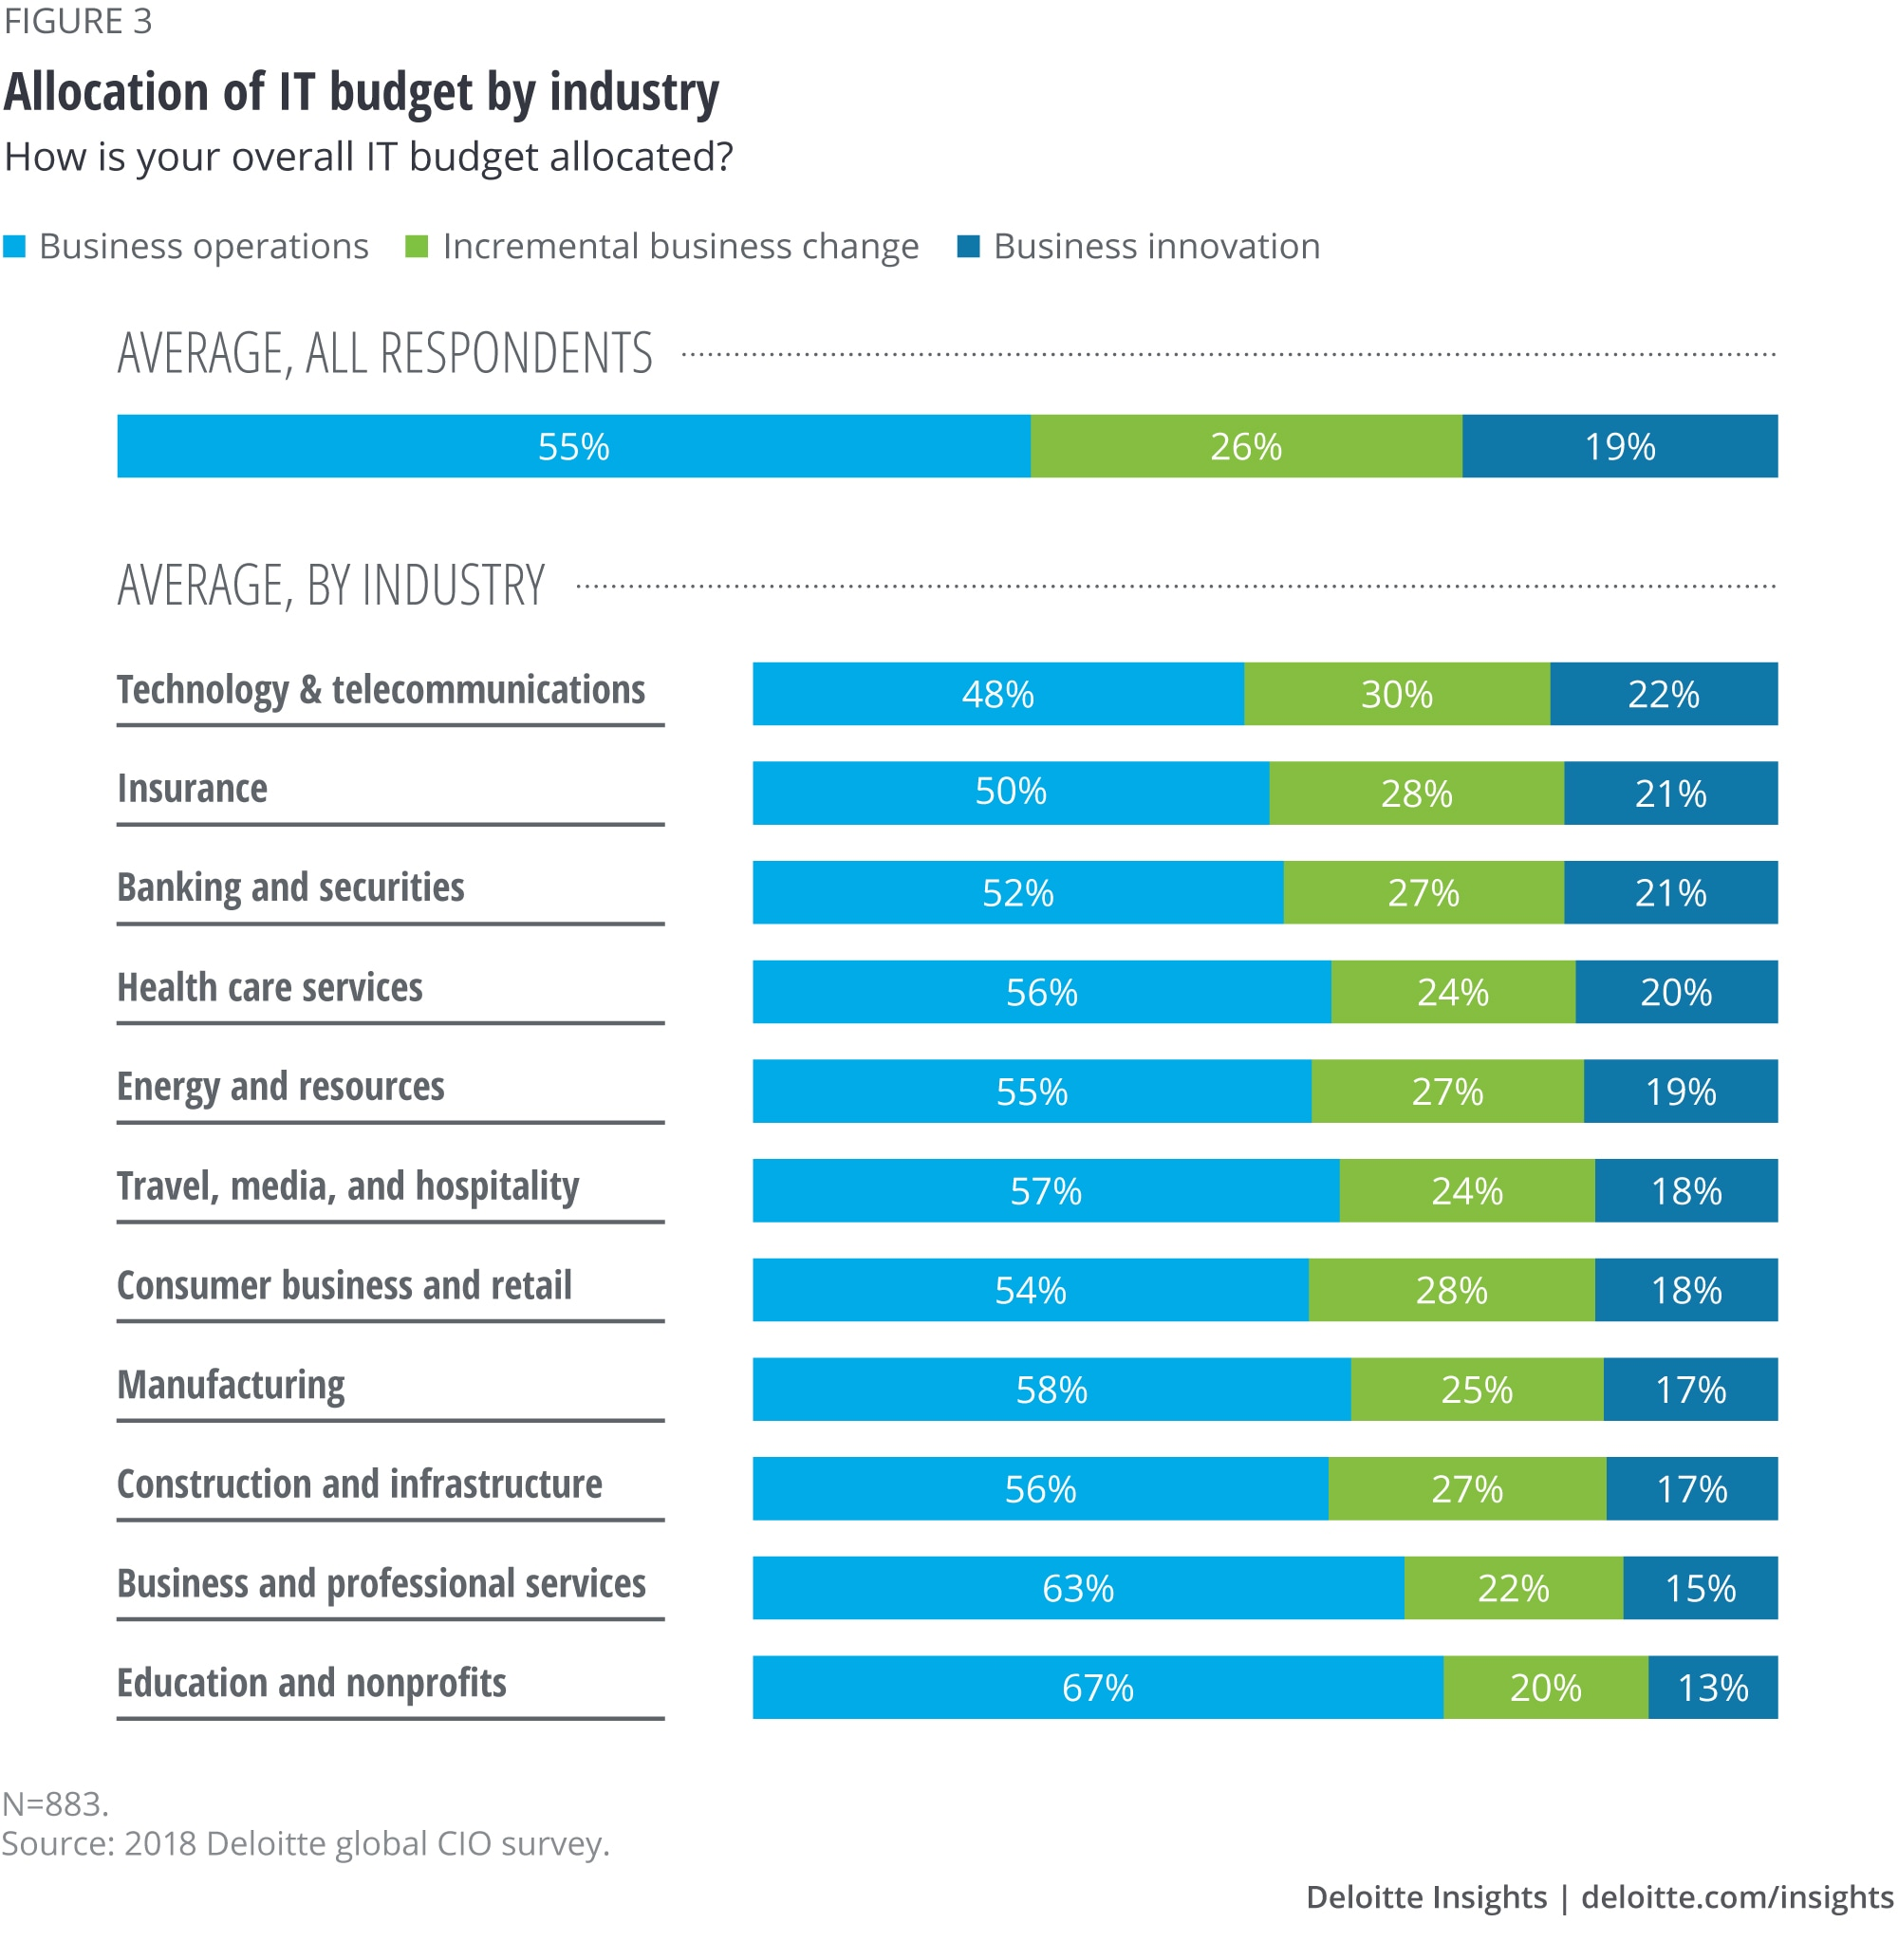 Allocation of IT budget by industry